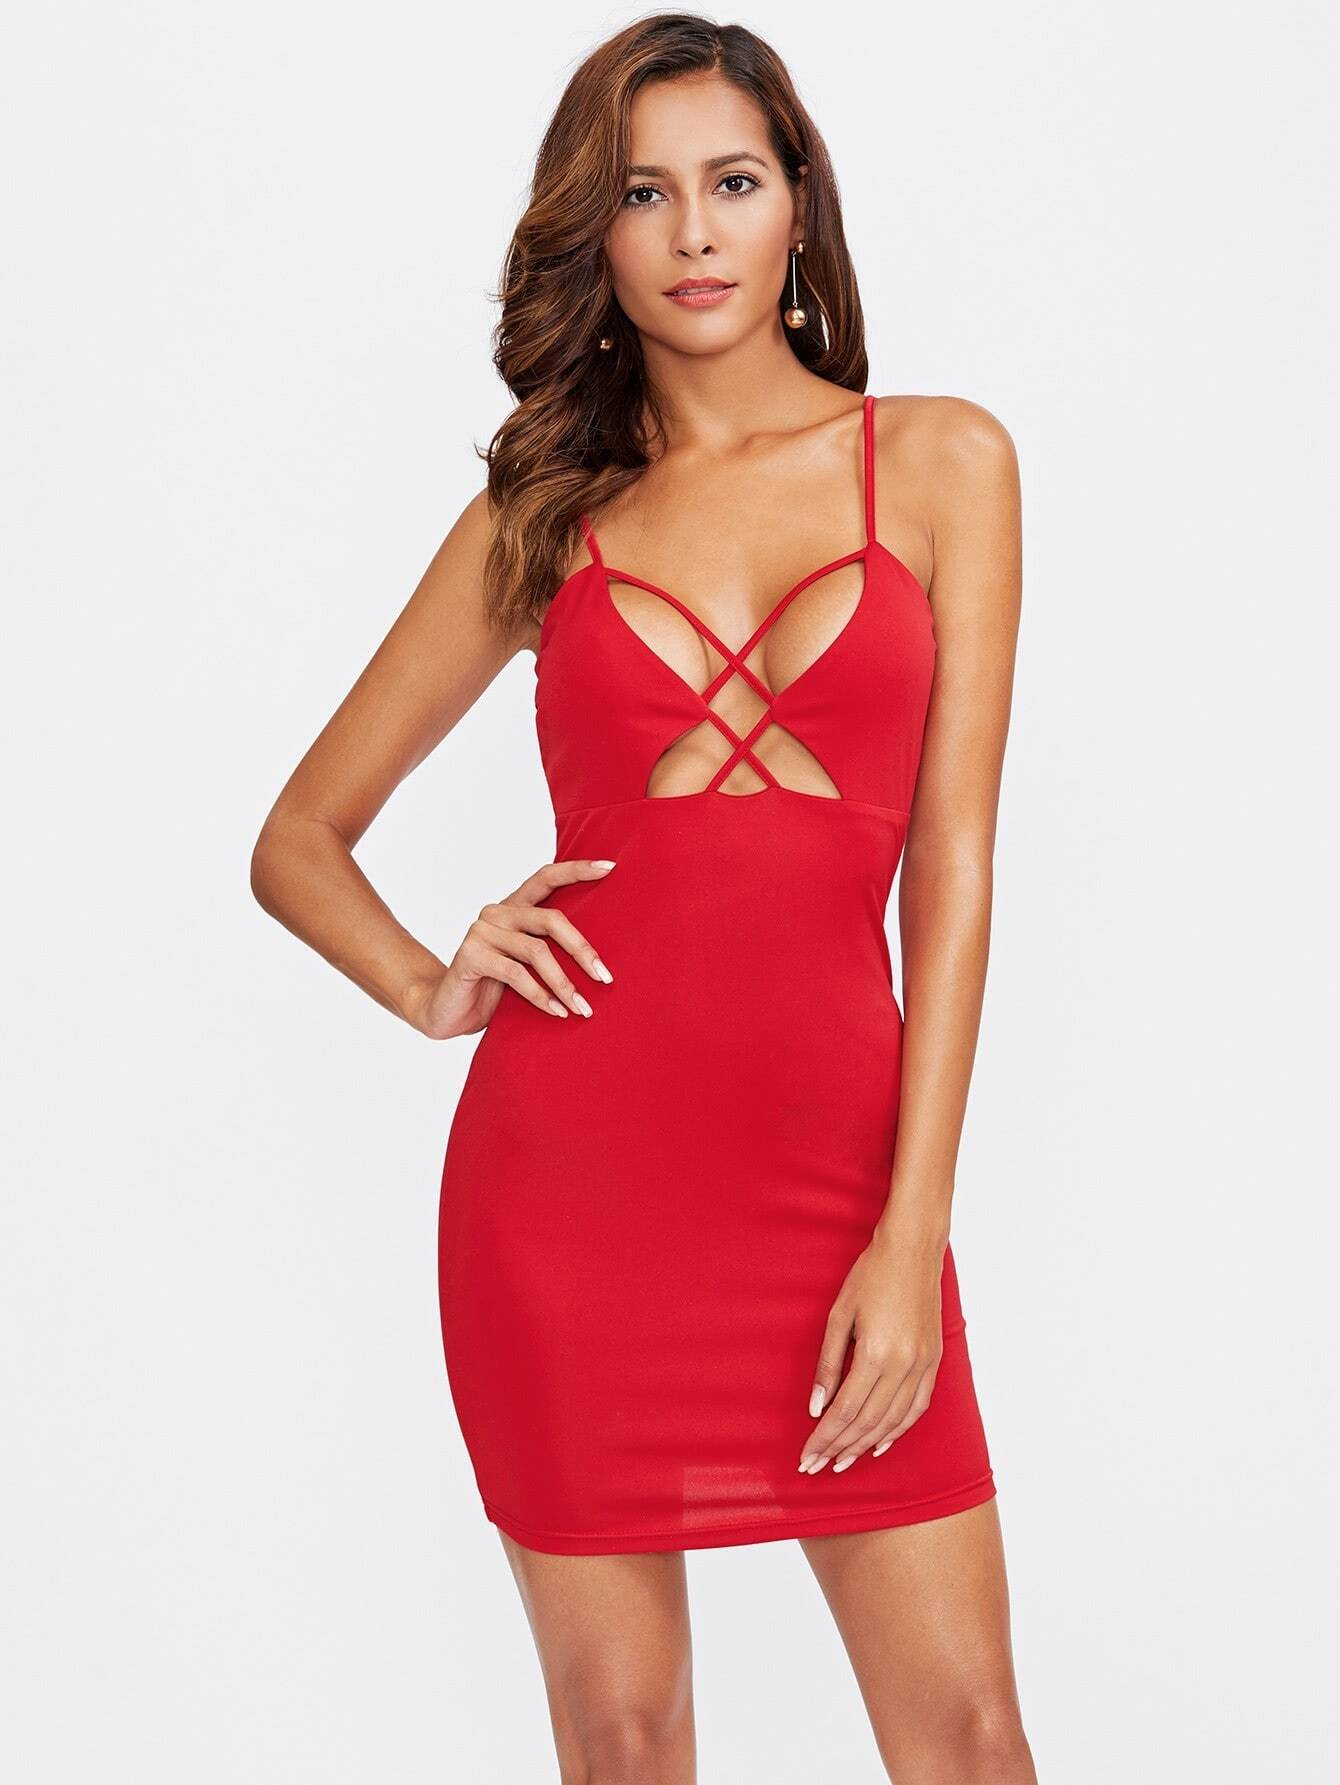 Caged Front Plunging Cami Dress dress170920713